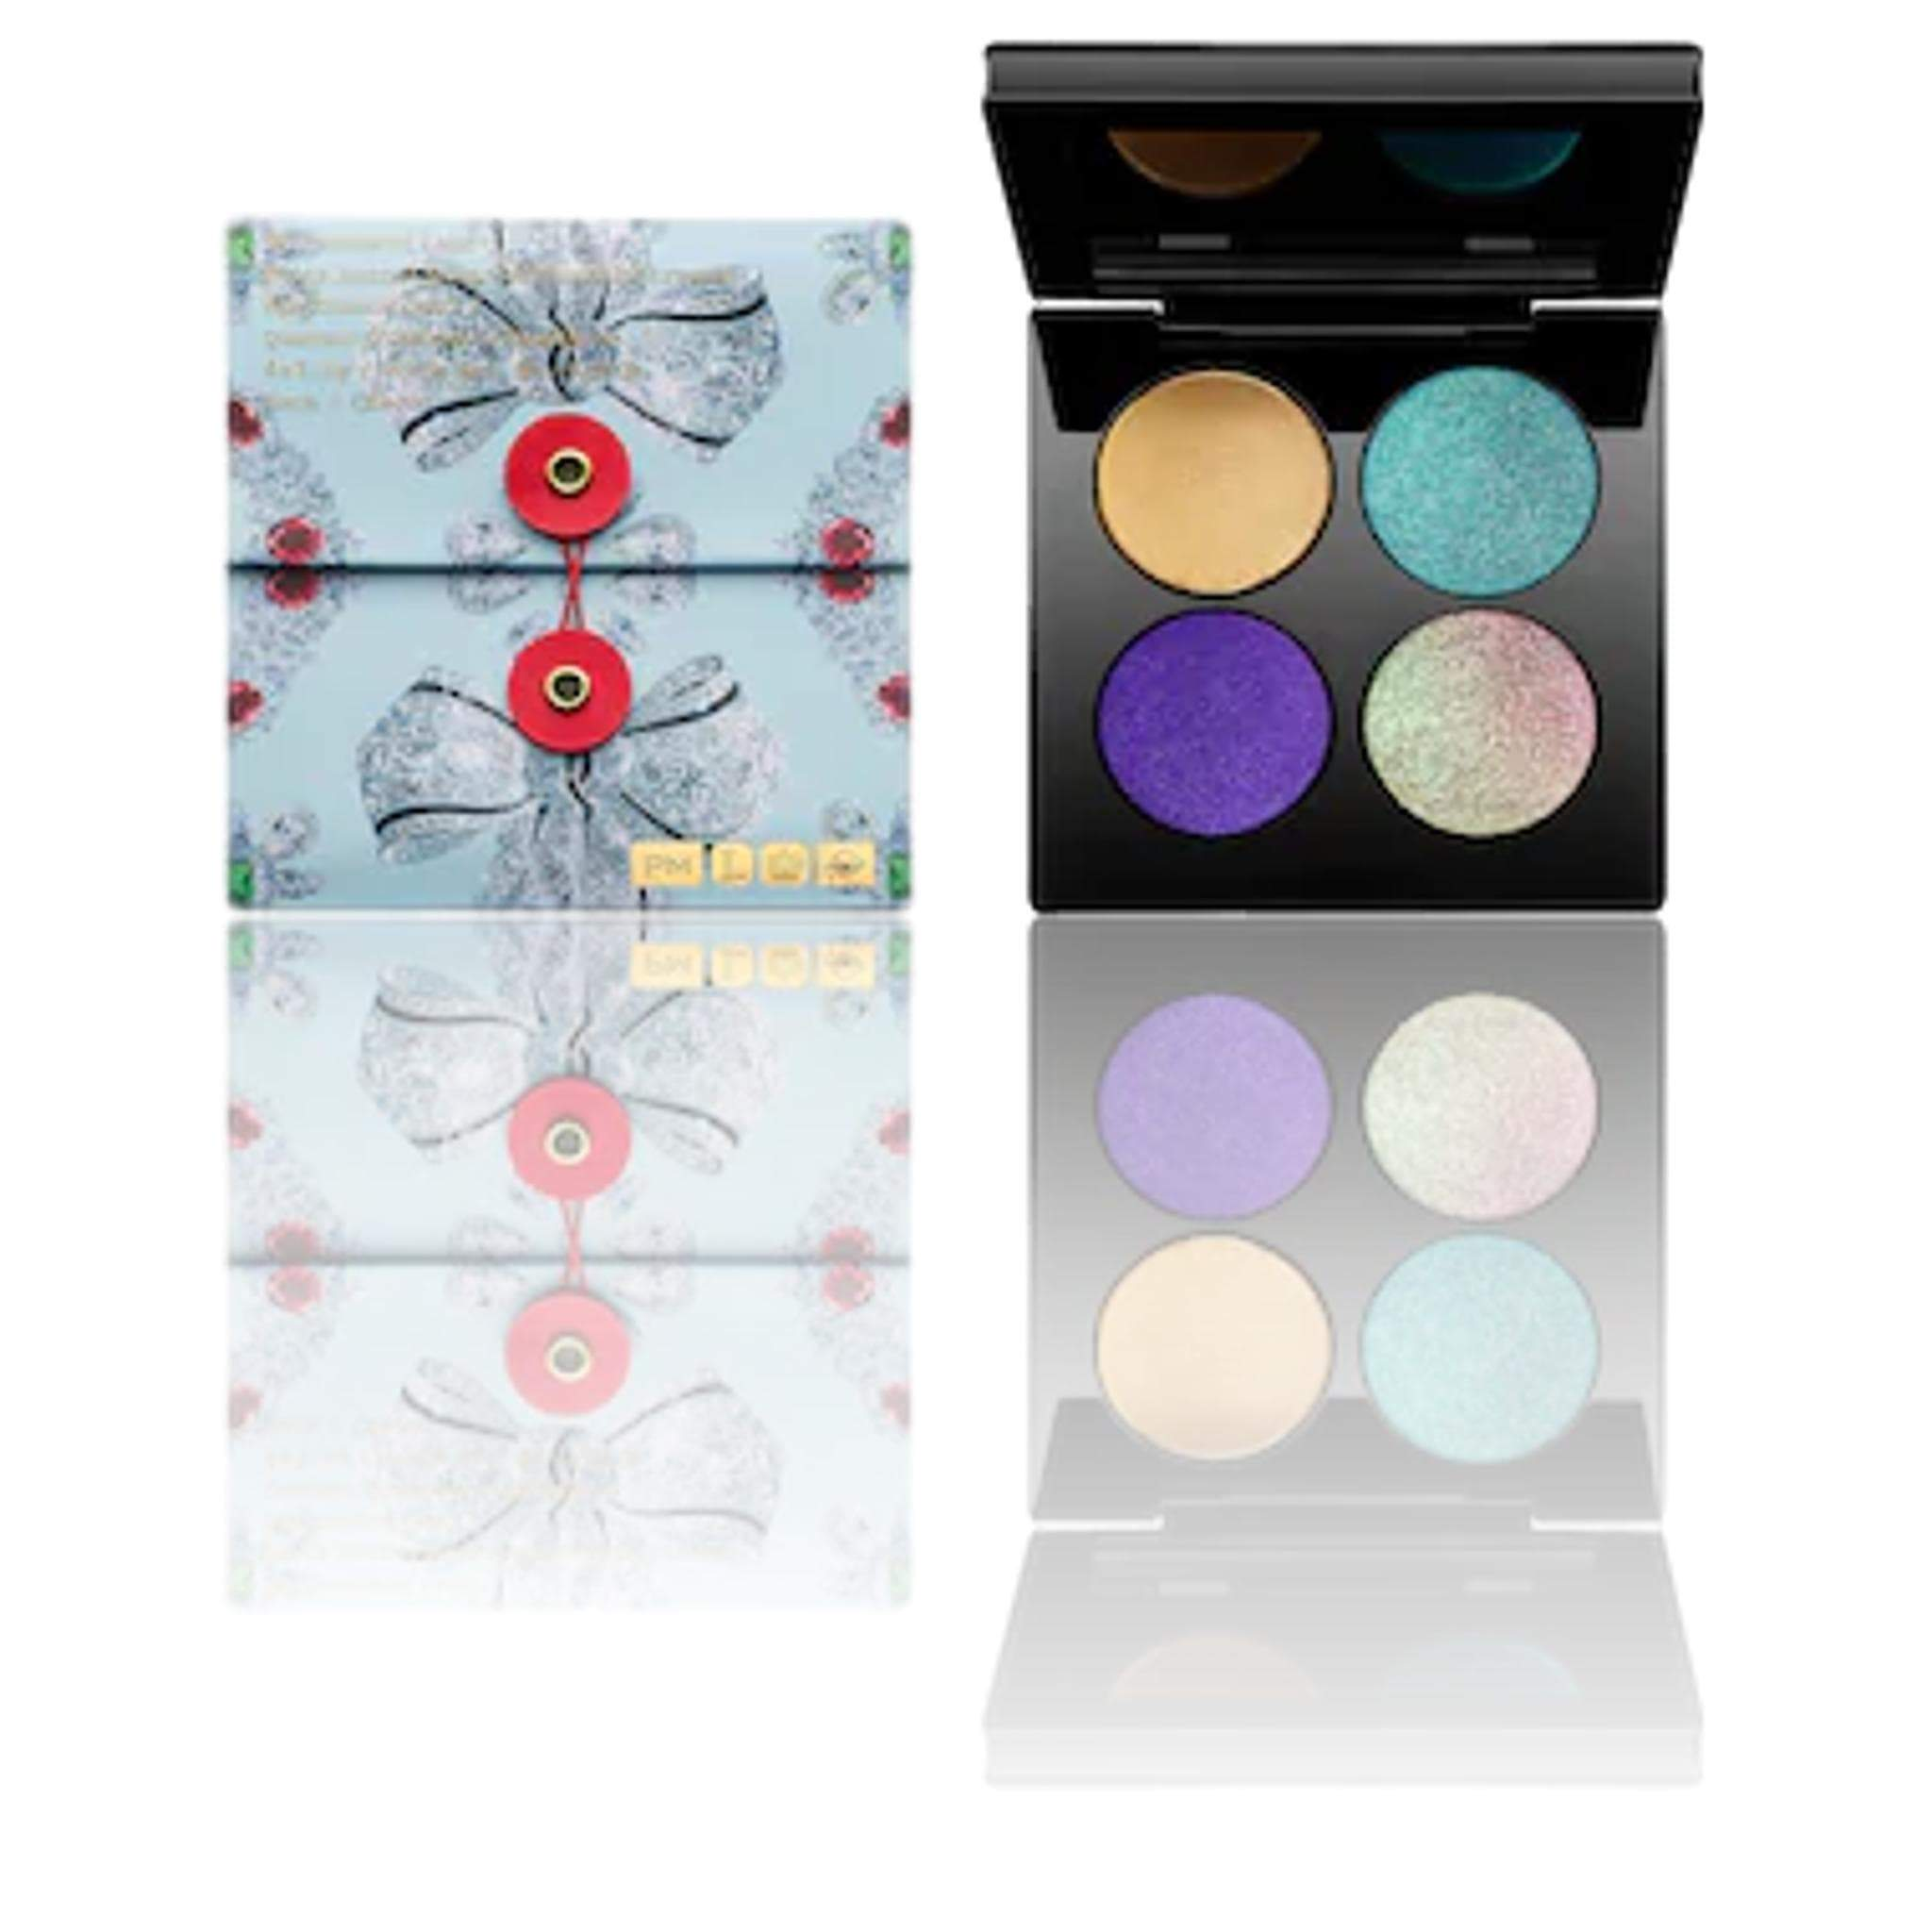 PAT MCGRATH LABS eyeshadow palette PAT MCGRATH LABS Blitz Astral Quad Eyeshadow Palette - Nocturnal Nirvana